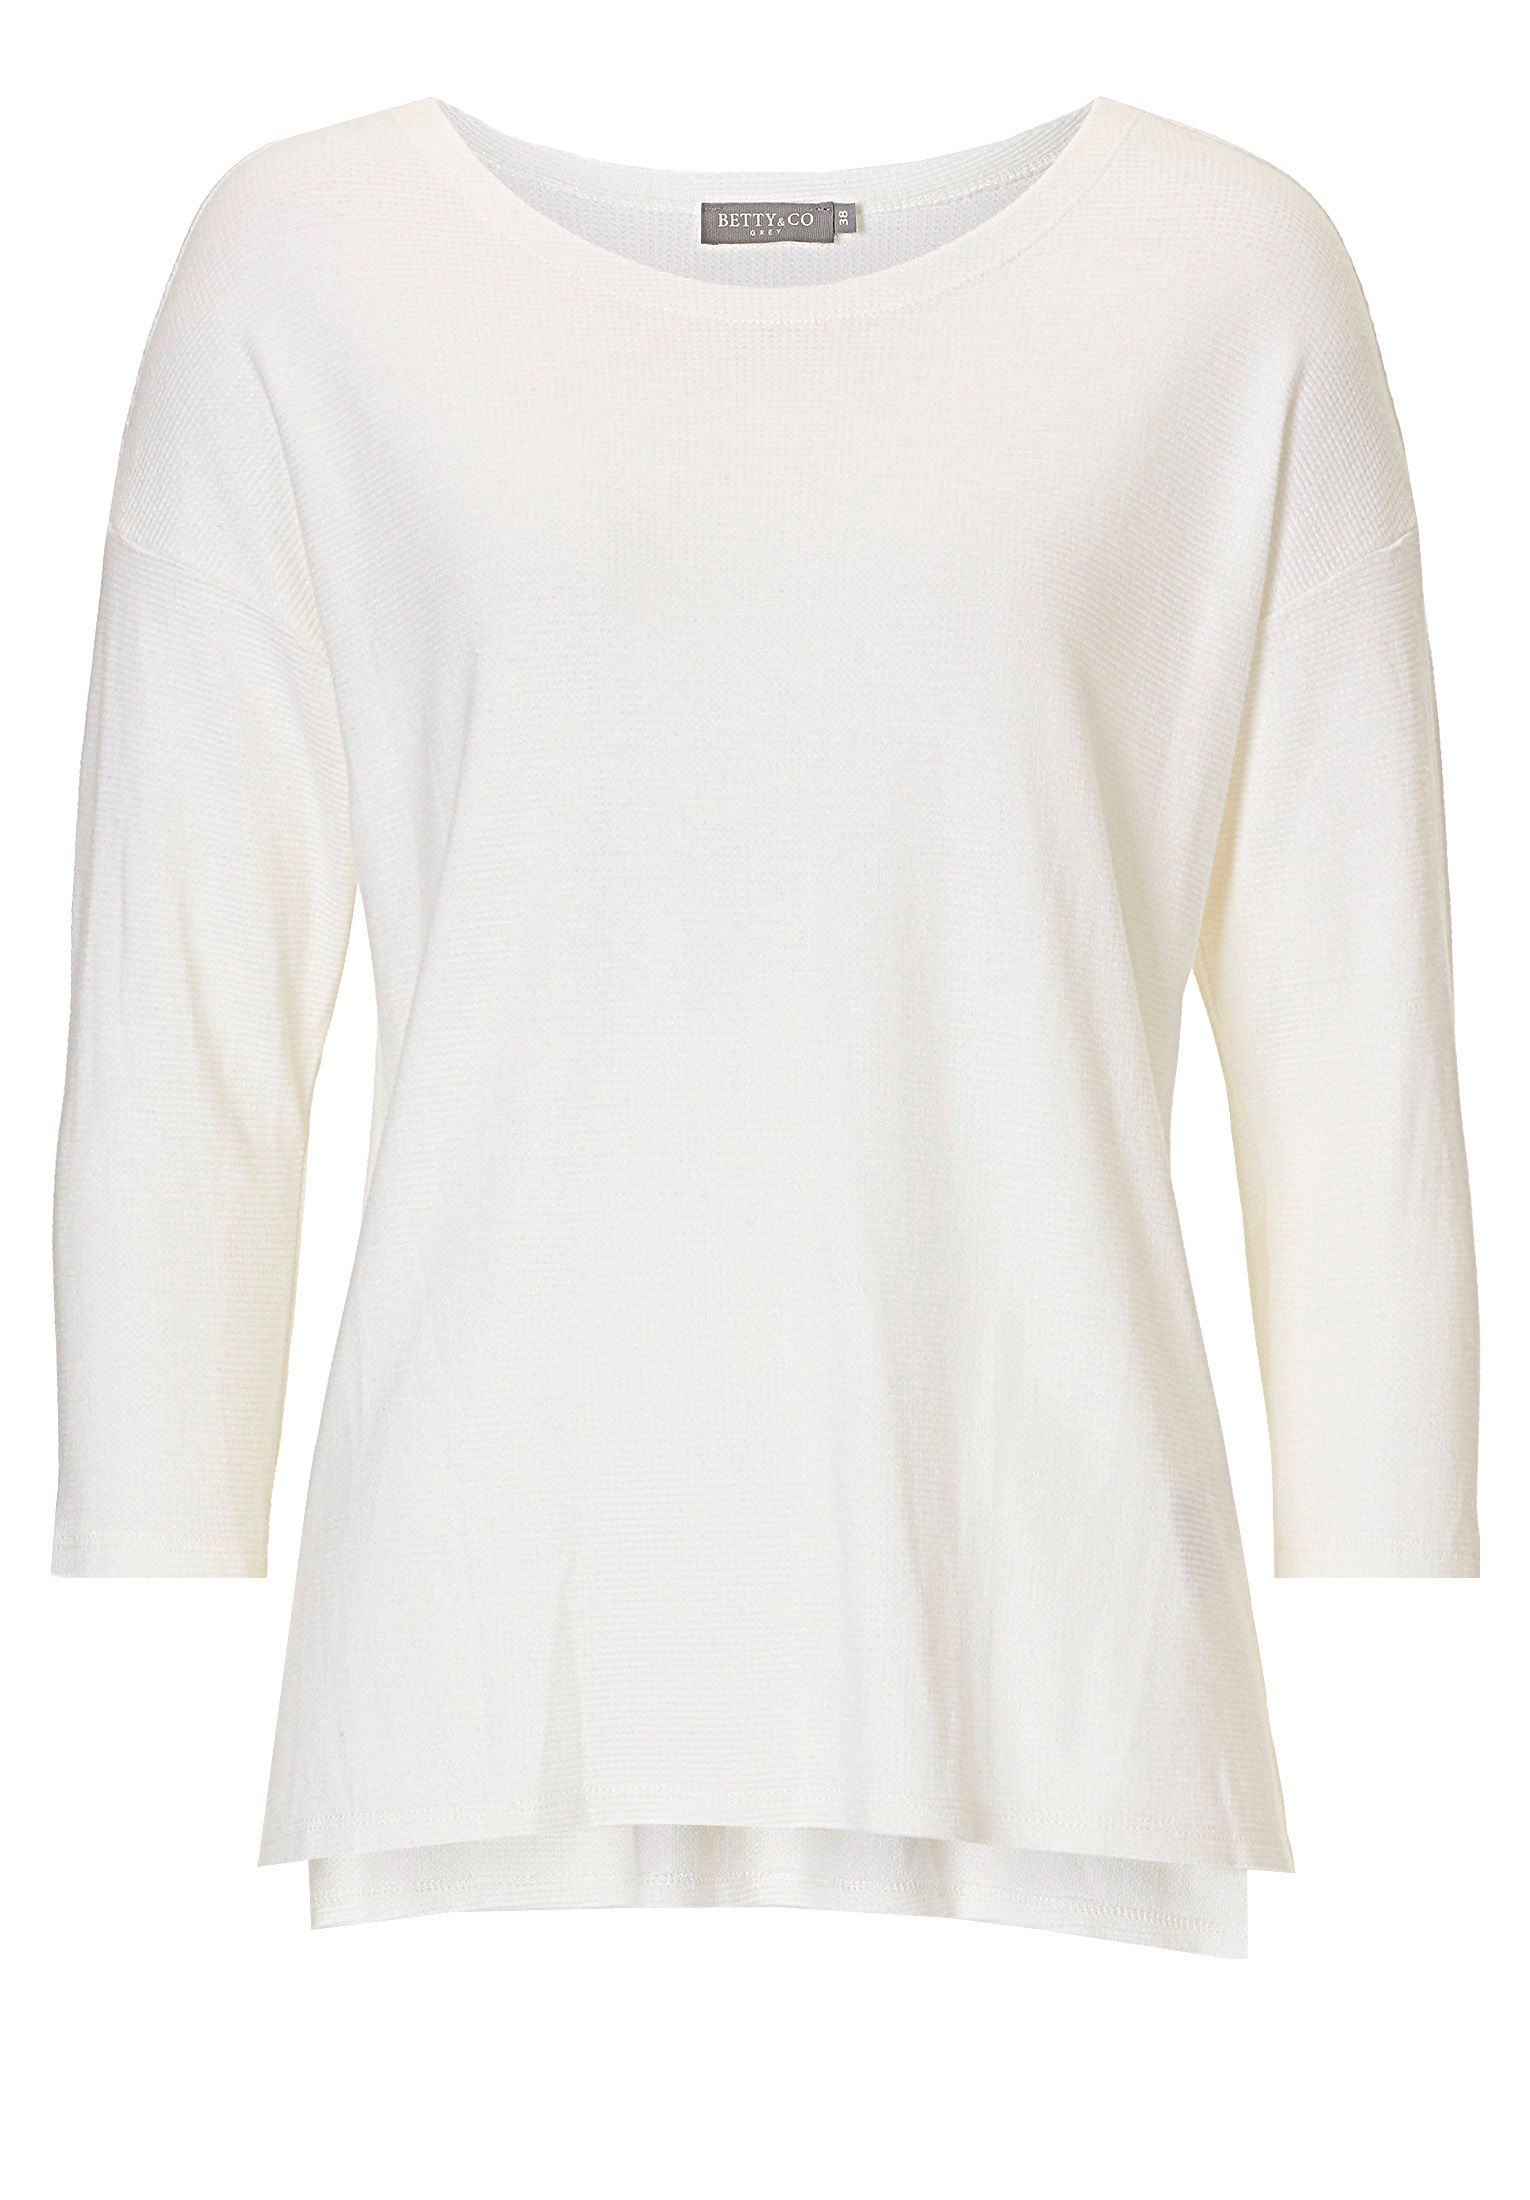 Betty & Co. Textured top, White